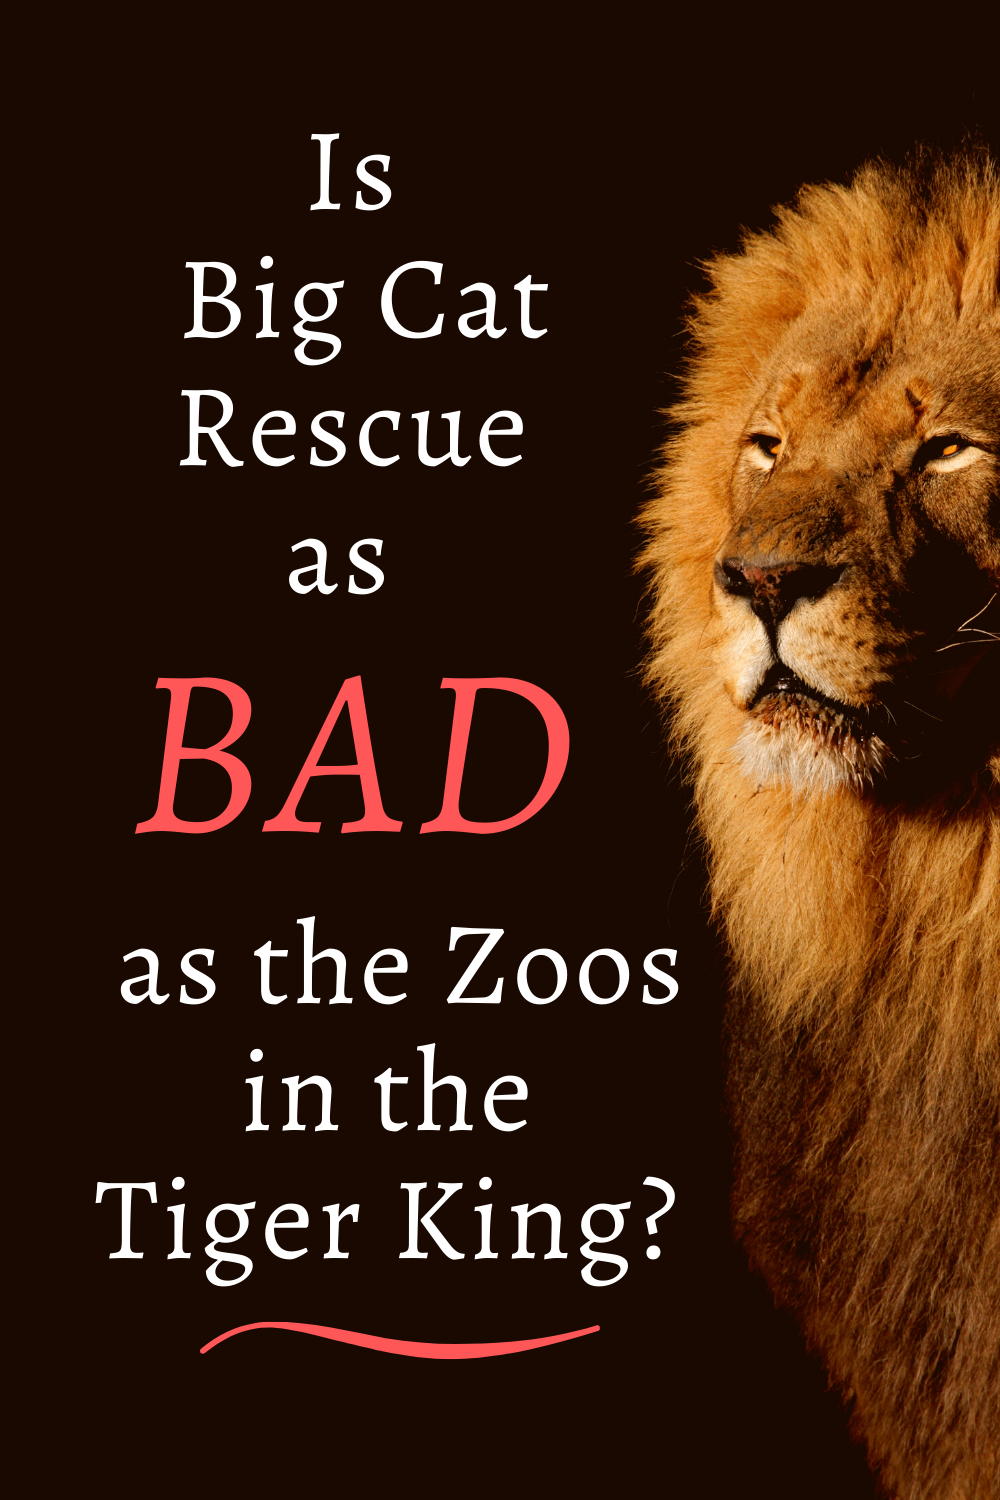 Is Big Cat Rescue as Bad as the Zoos in Tiger King? in